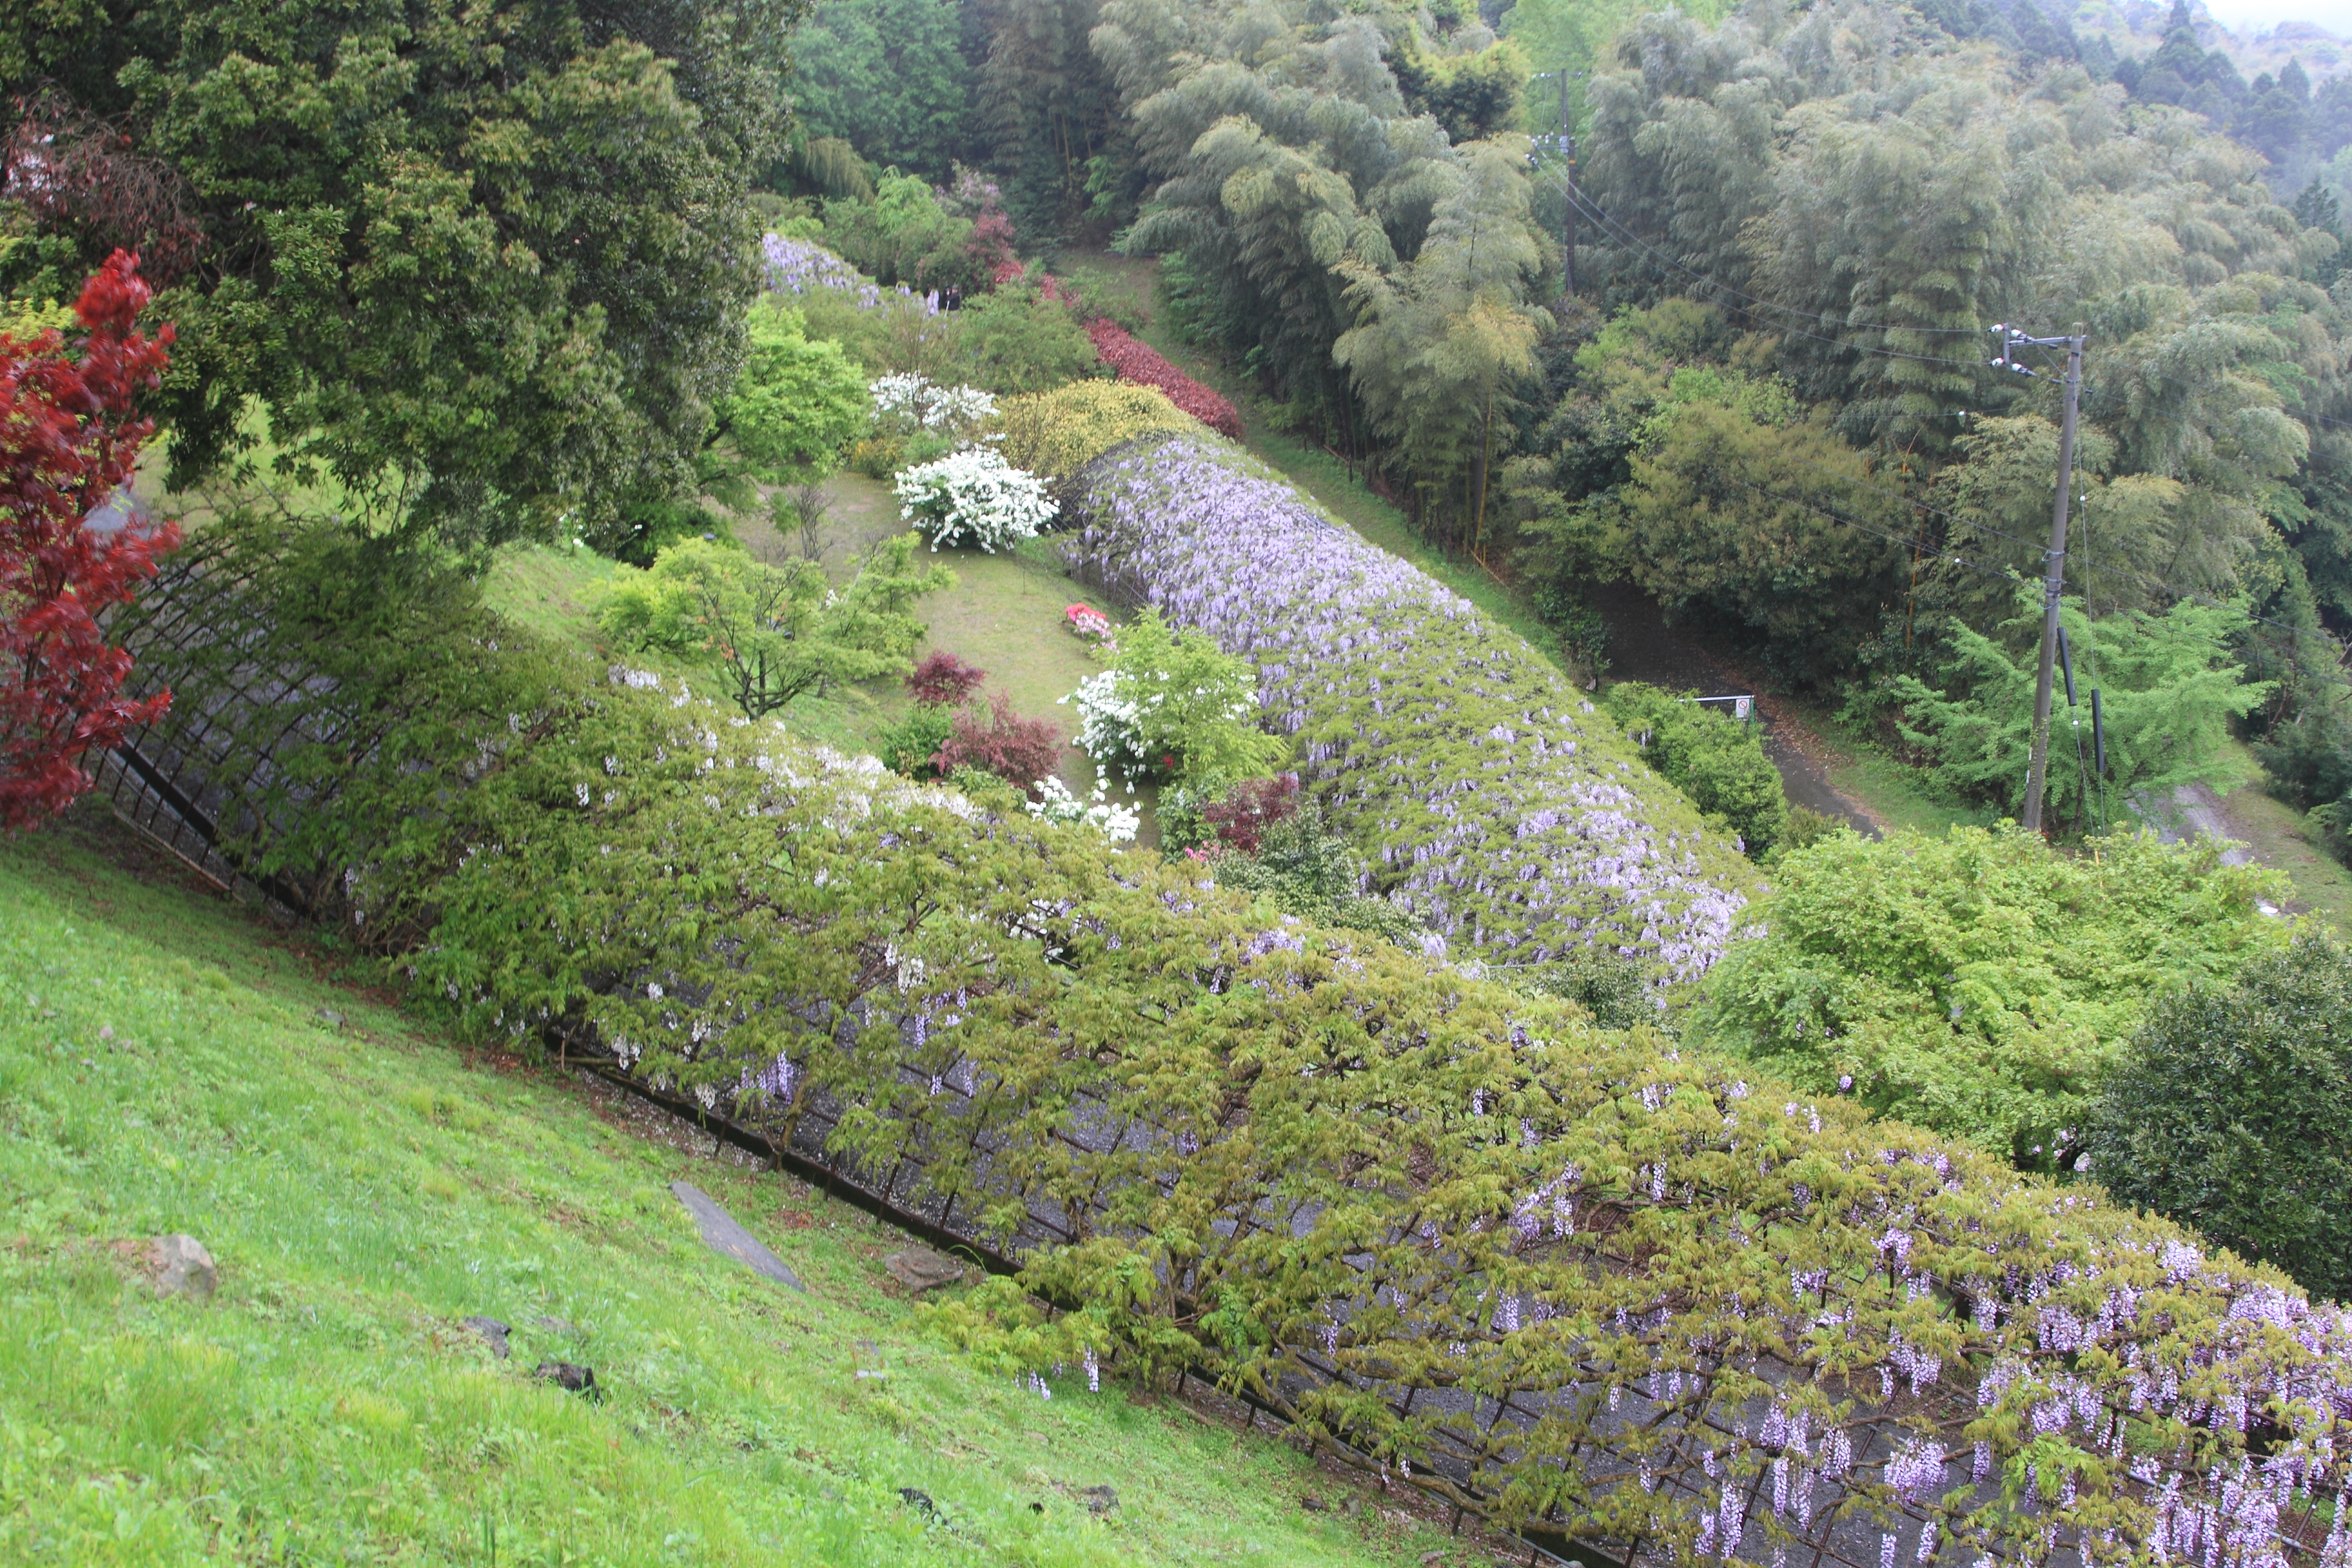 Top view of the two Wisteria flower tunnels